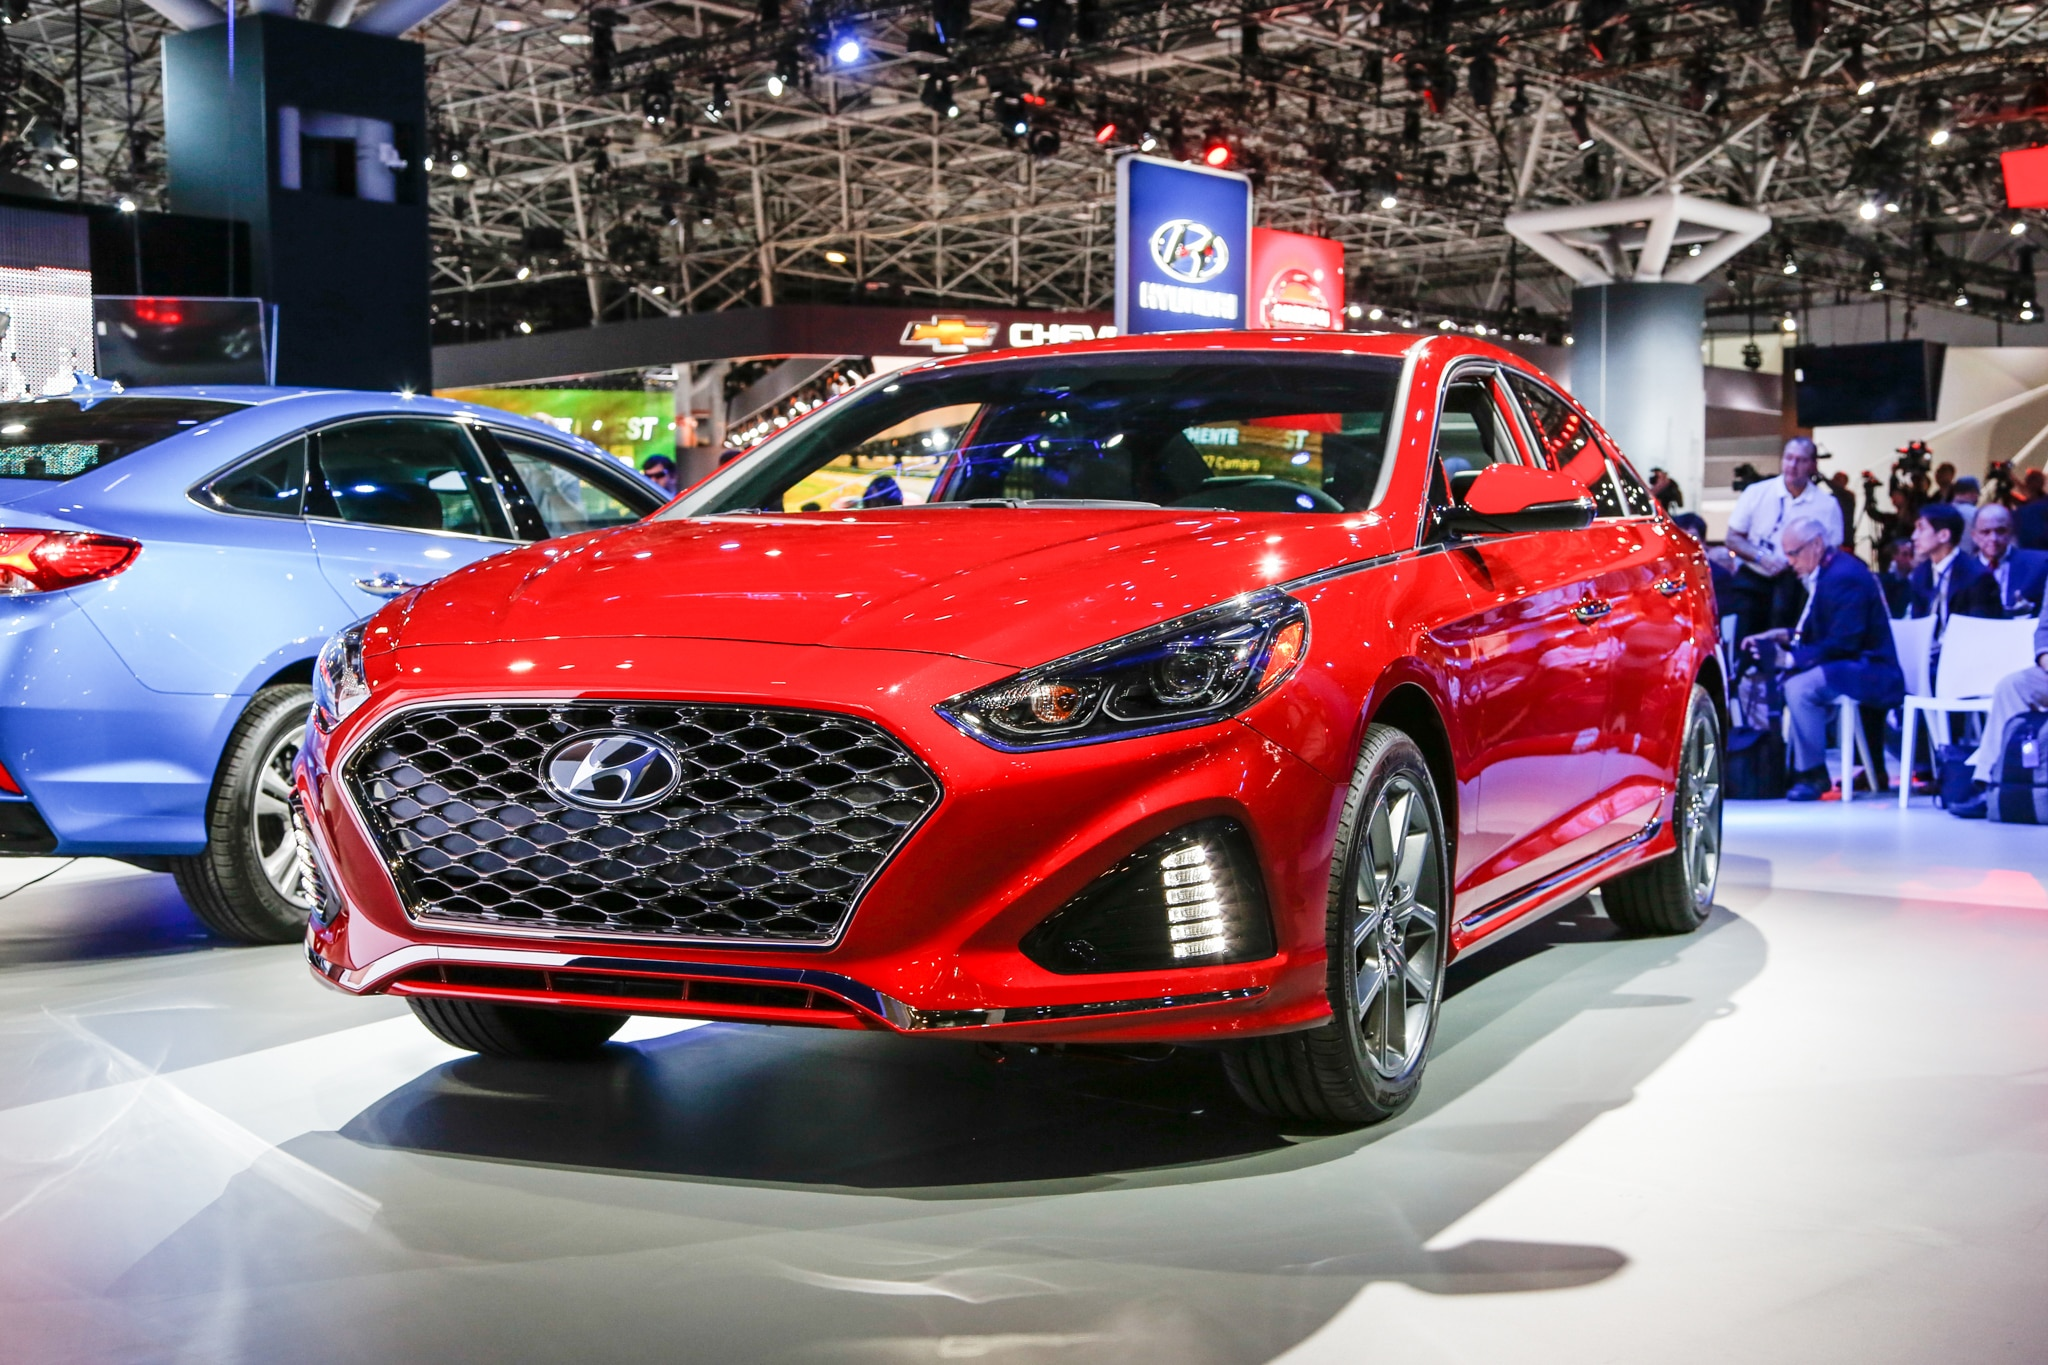 2018 Hyundai Sonata Front Three Quarter 01